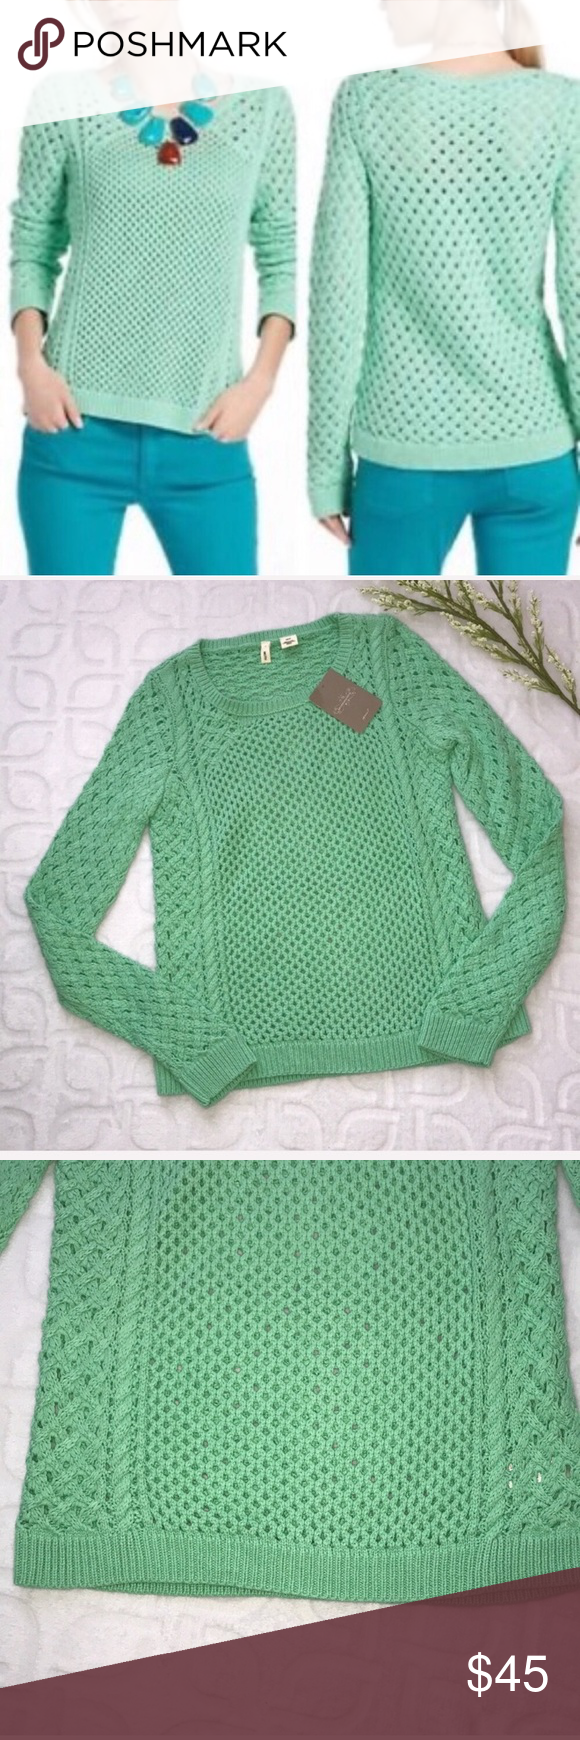 NWT ANTHROPOLOGIE MOTH Chunky Open Knit Sweater XS NWT